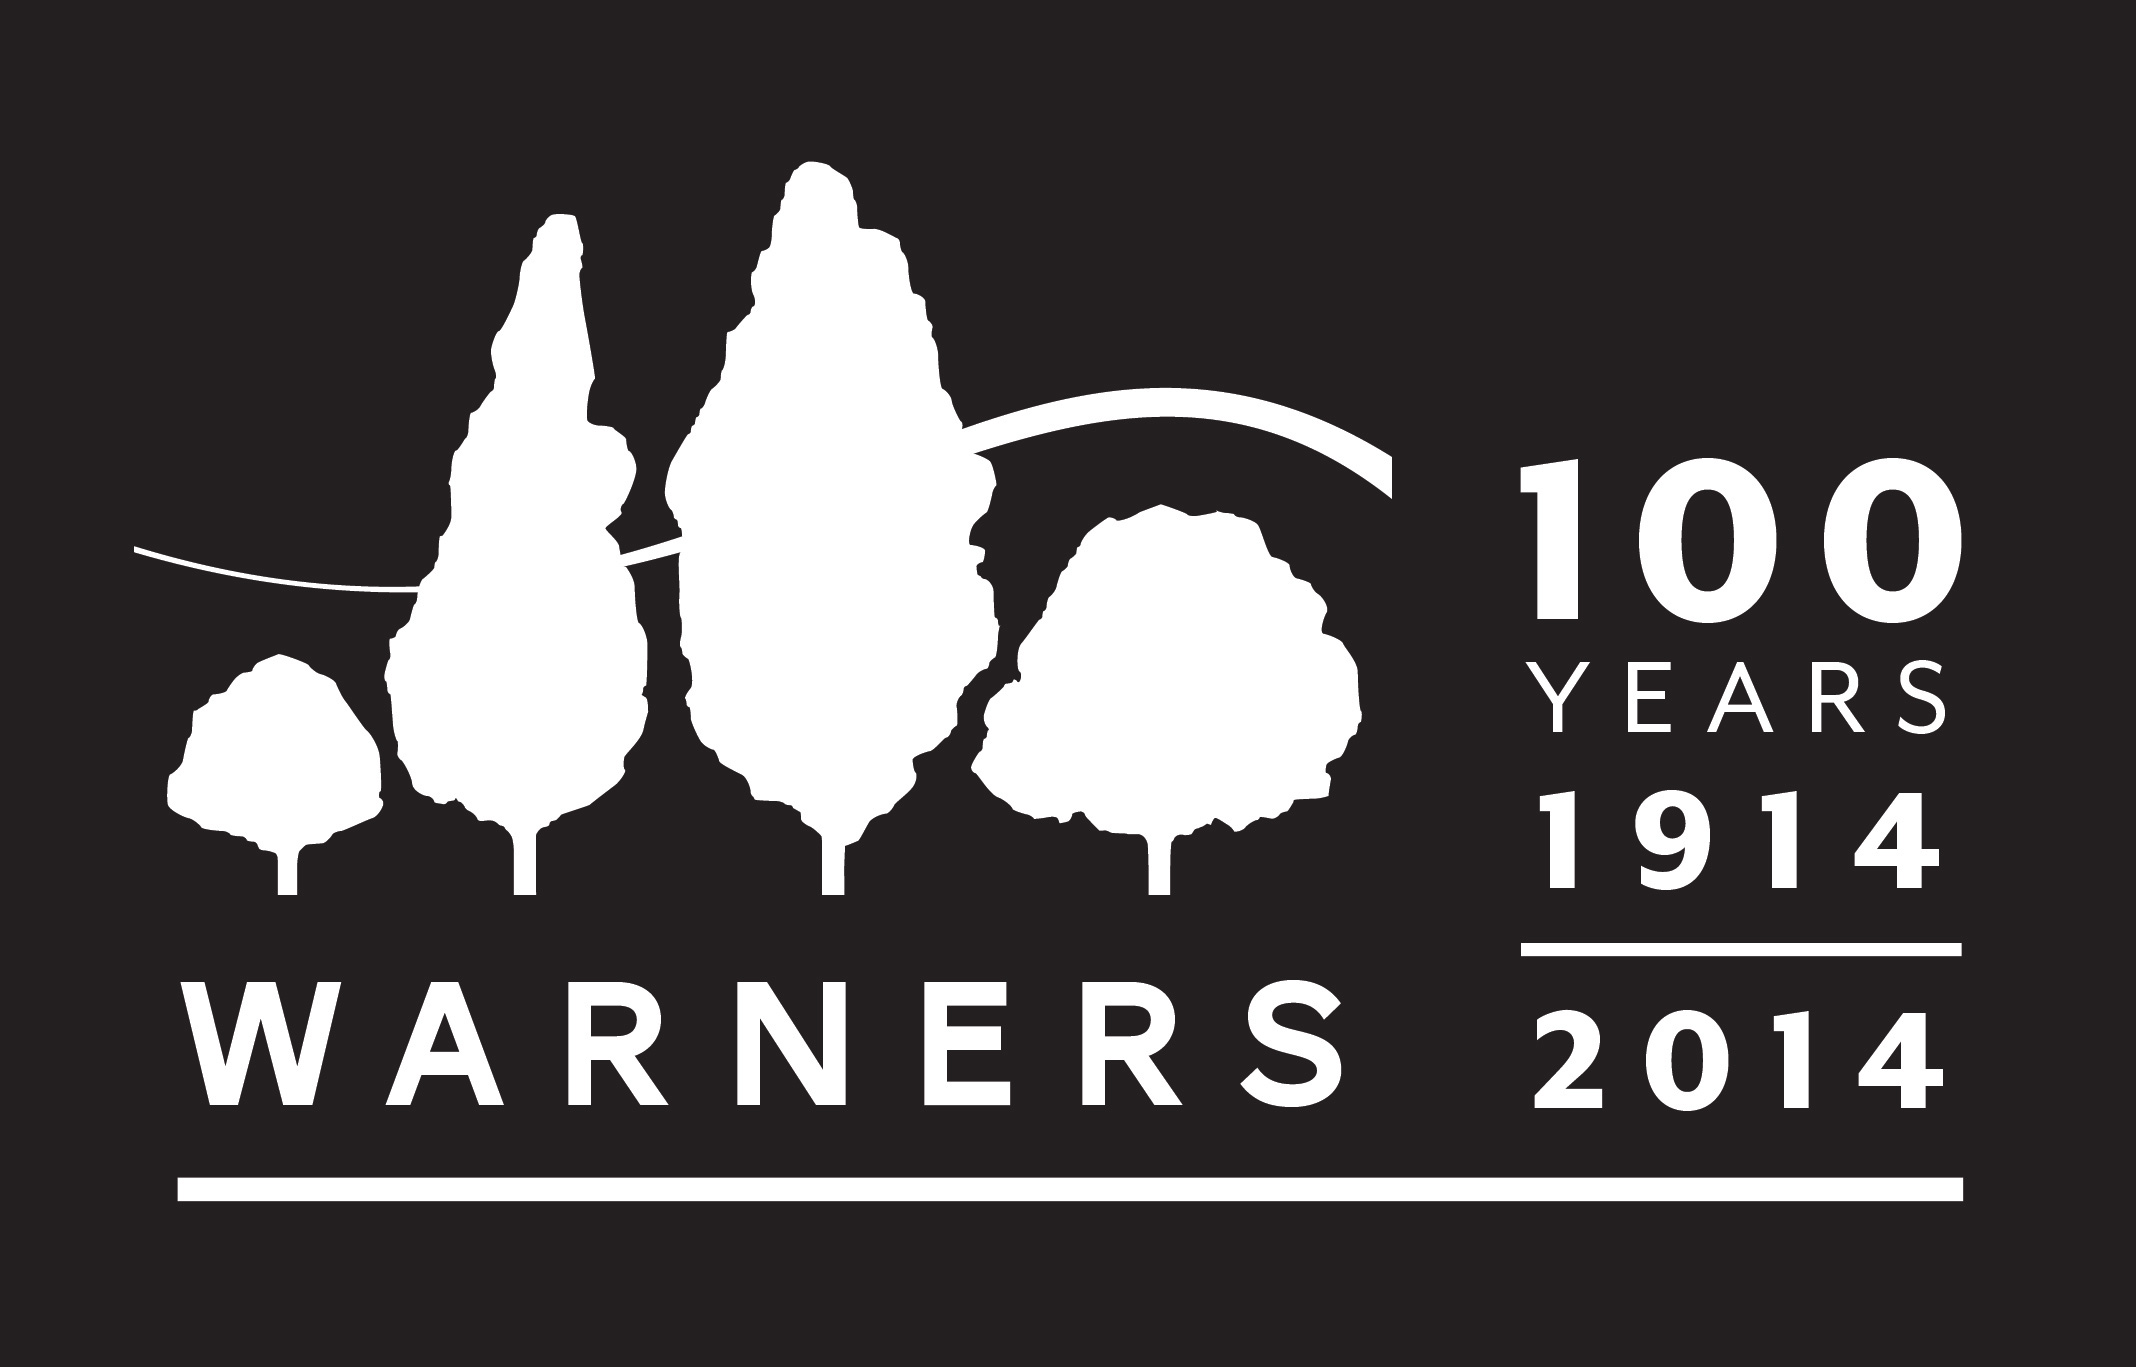 Warners 100 Years